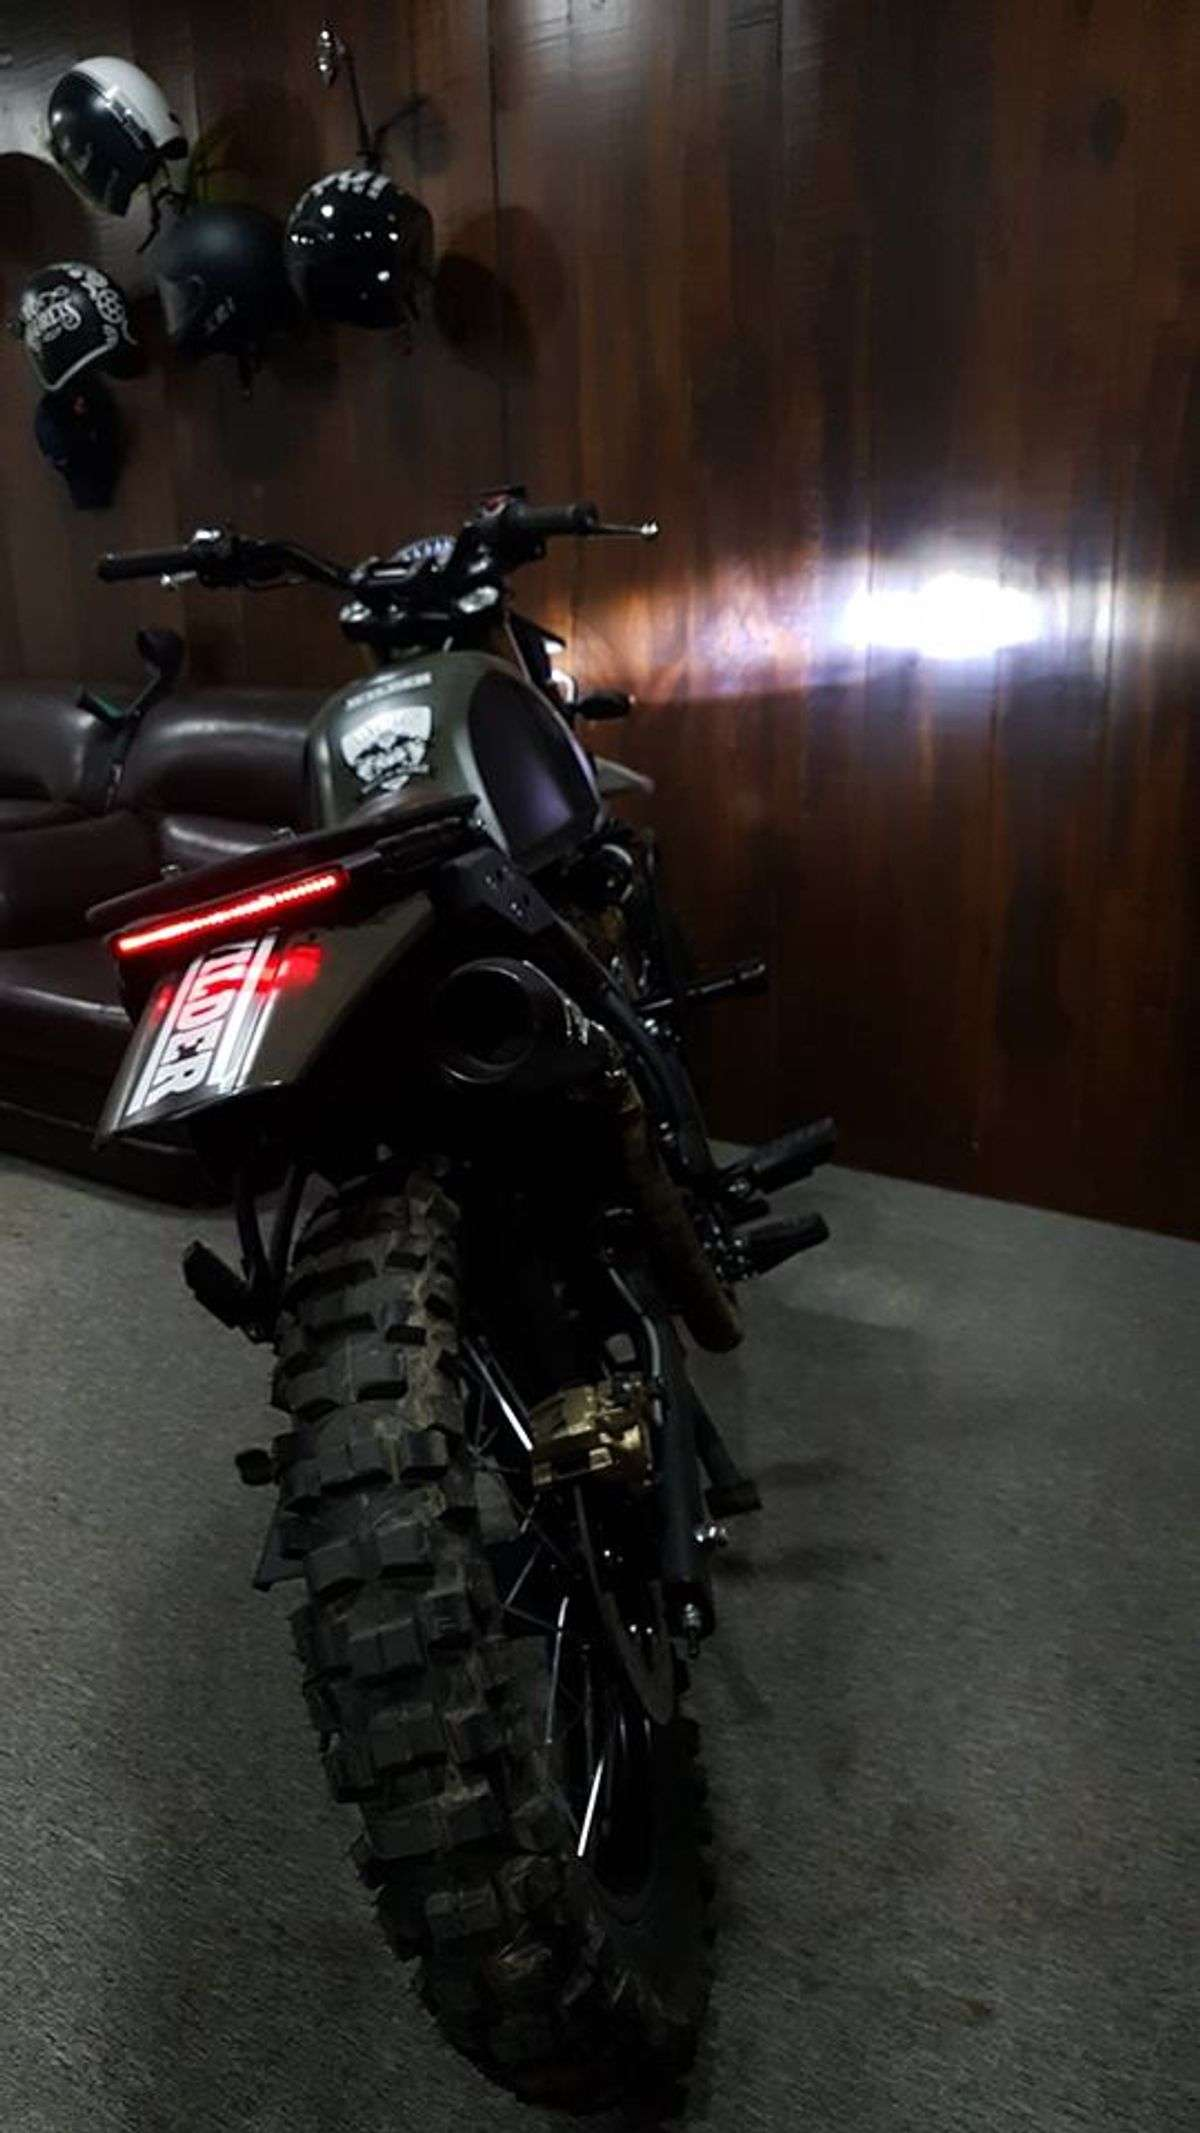 This Customised Re Himalayan Looks Mean In This Shade Of